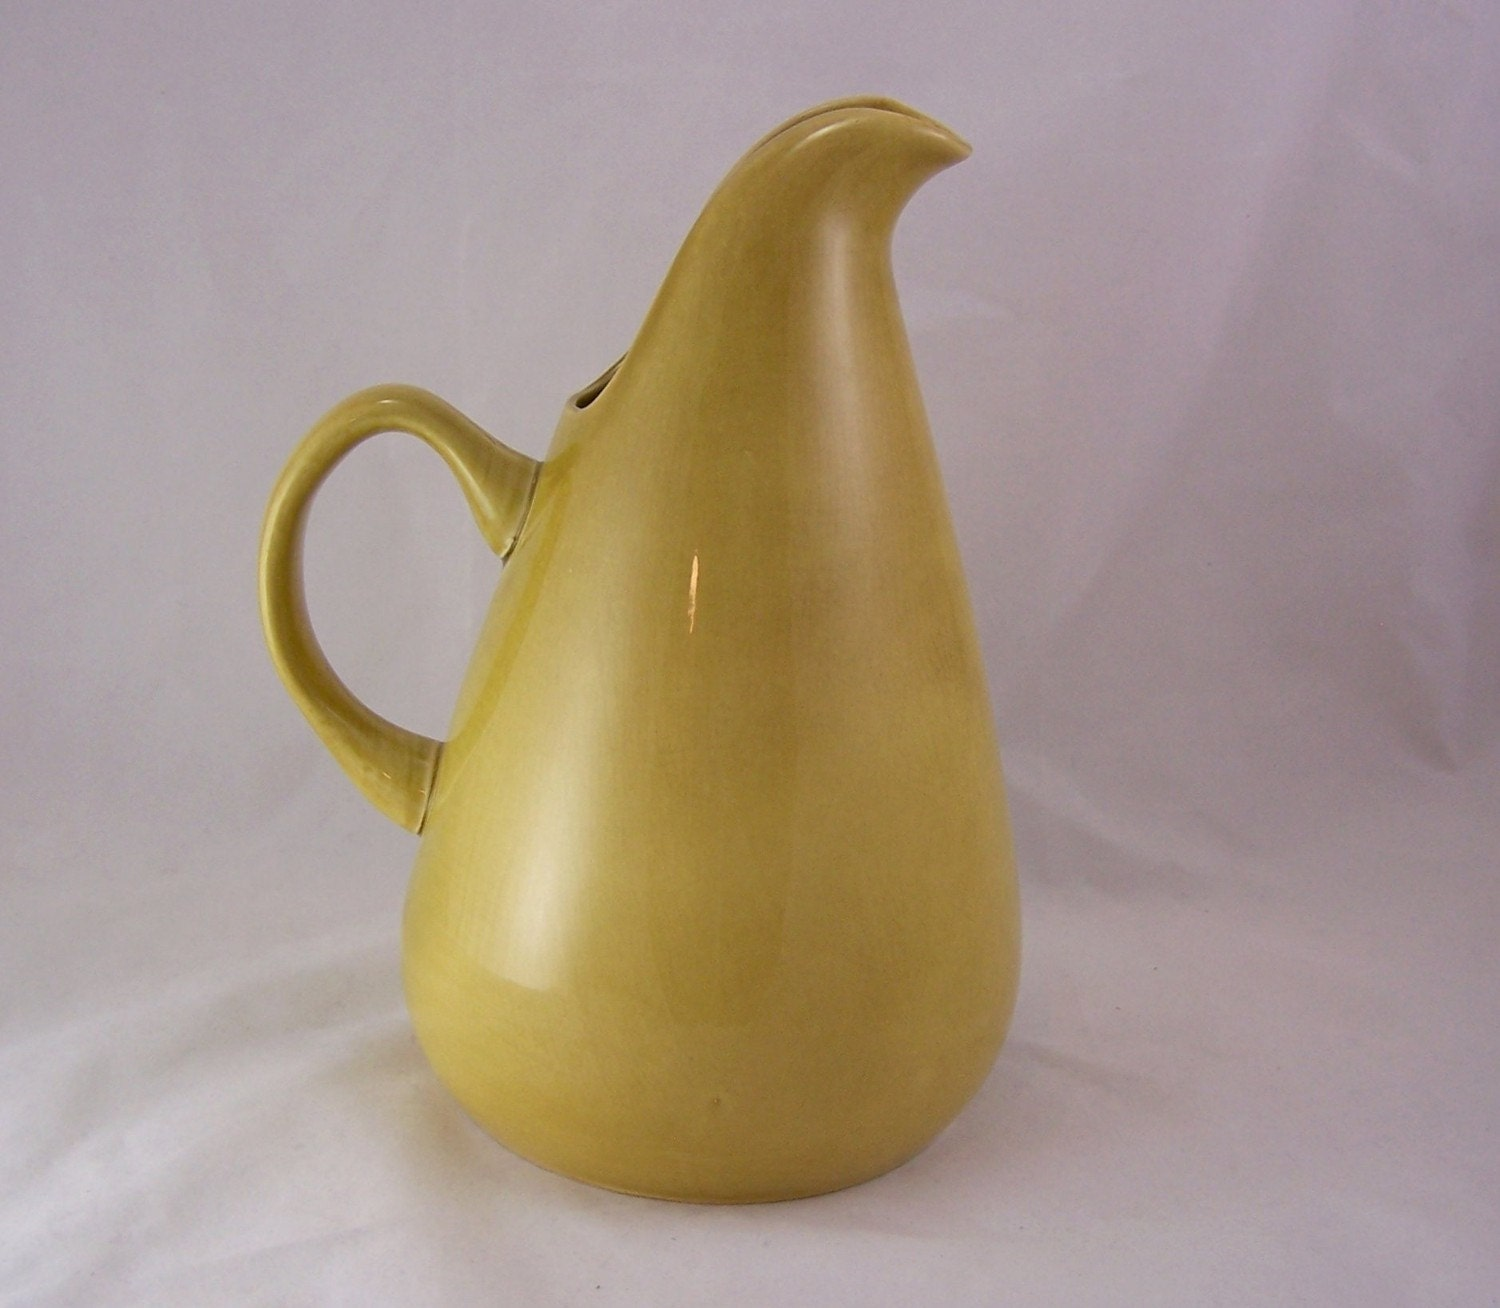 Sale russel wright american modern water pitcher by - Russel wright pitcher ...